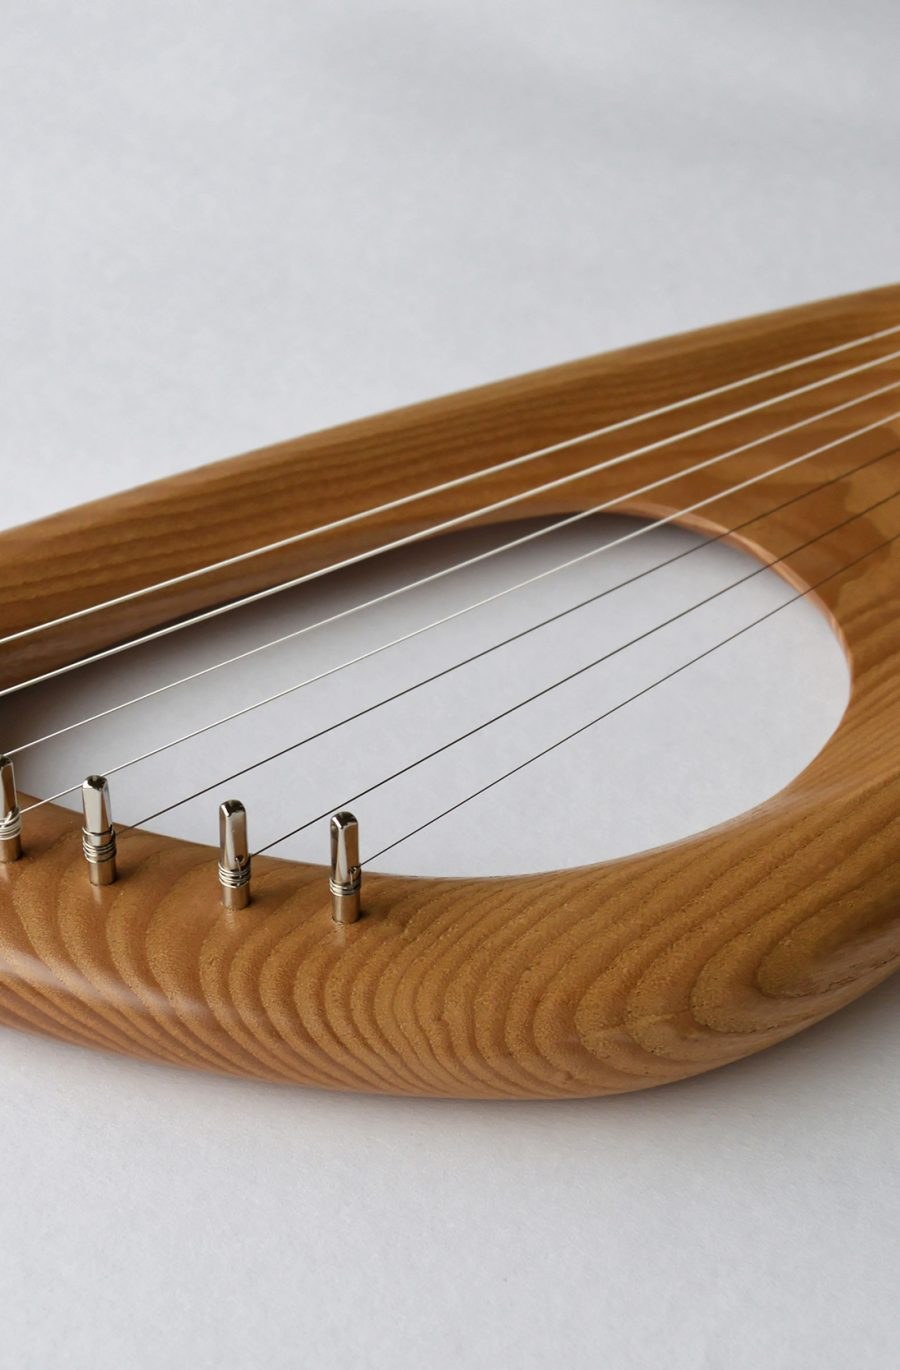 7 String Pentatonic Lyre, Ash Wood